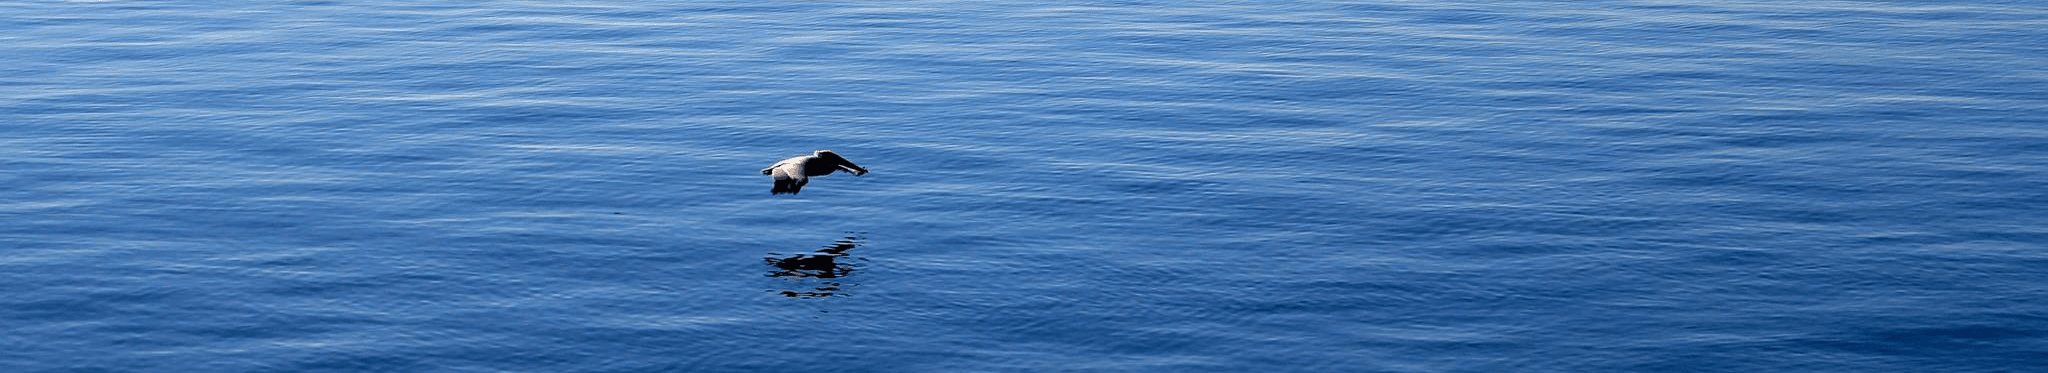 Pelican flying over the water